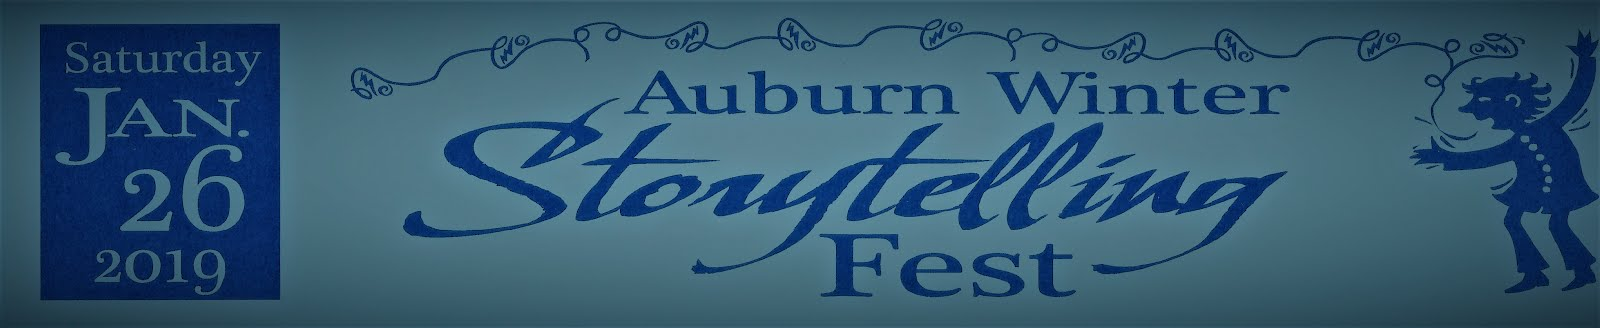 Auburn Winter Storytelling Festival